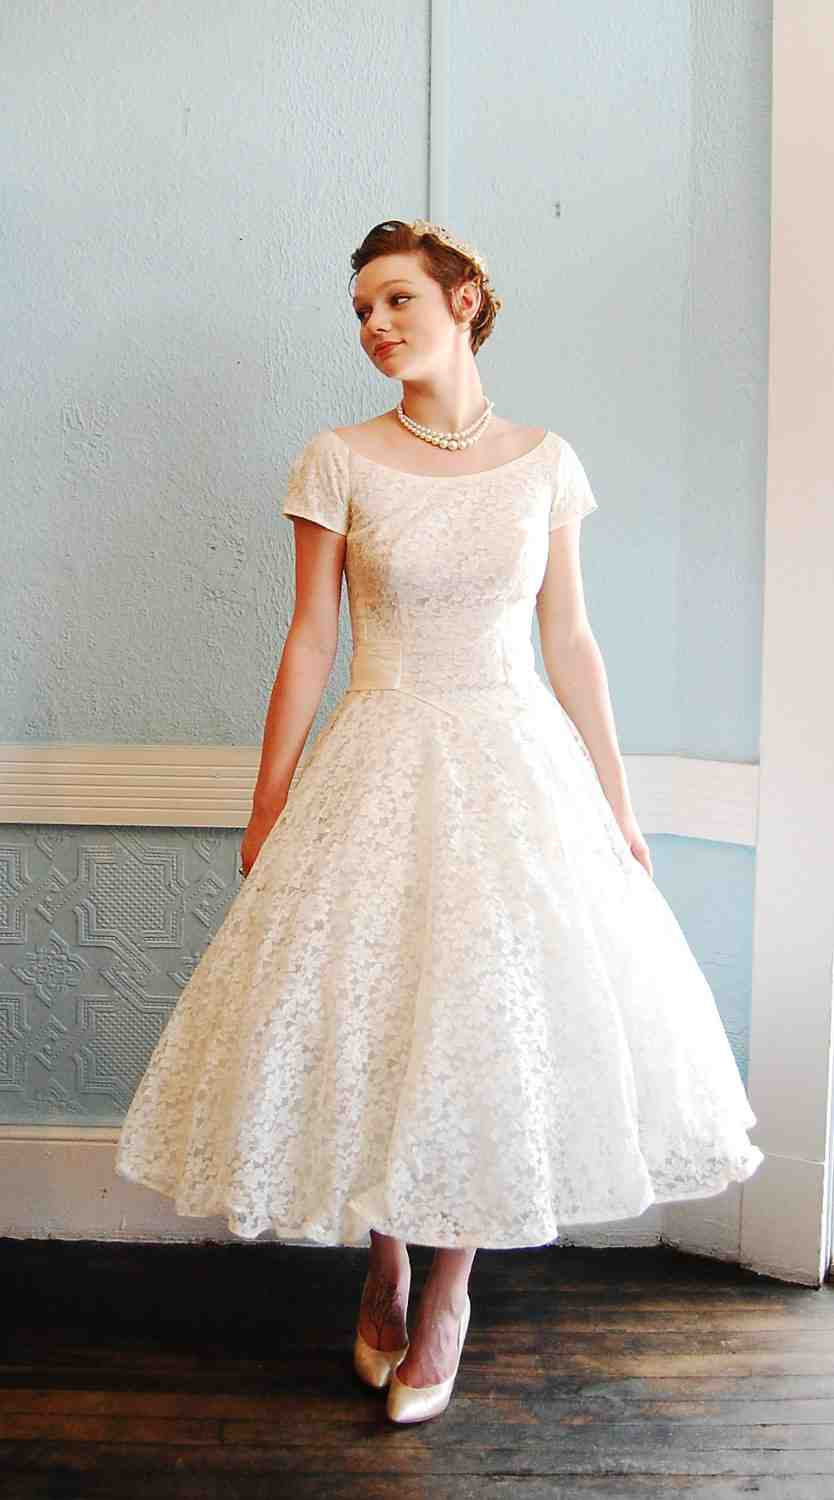 Tea length wedding dresses choose for casual afternoon for Dresses for afternoon wedding